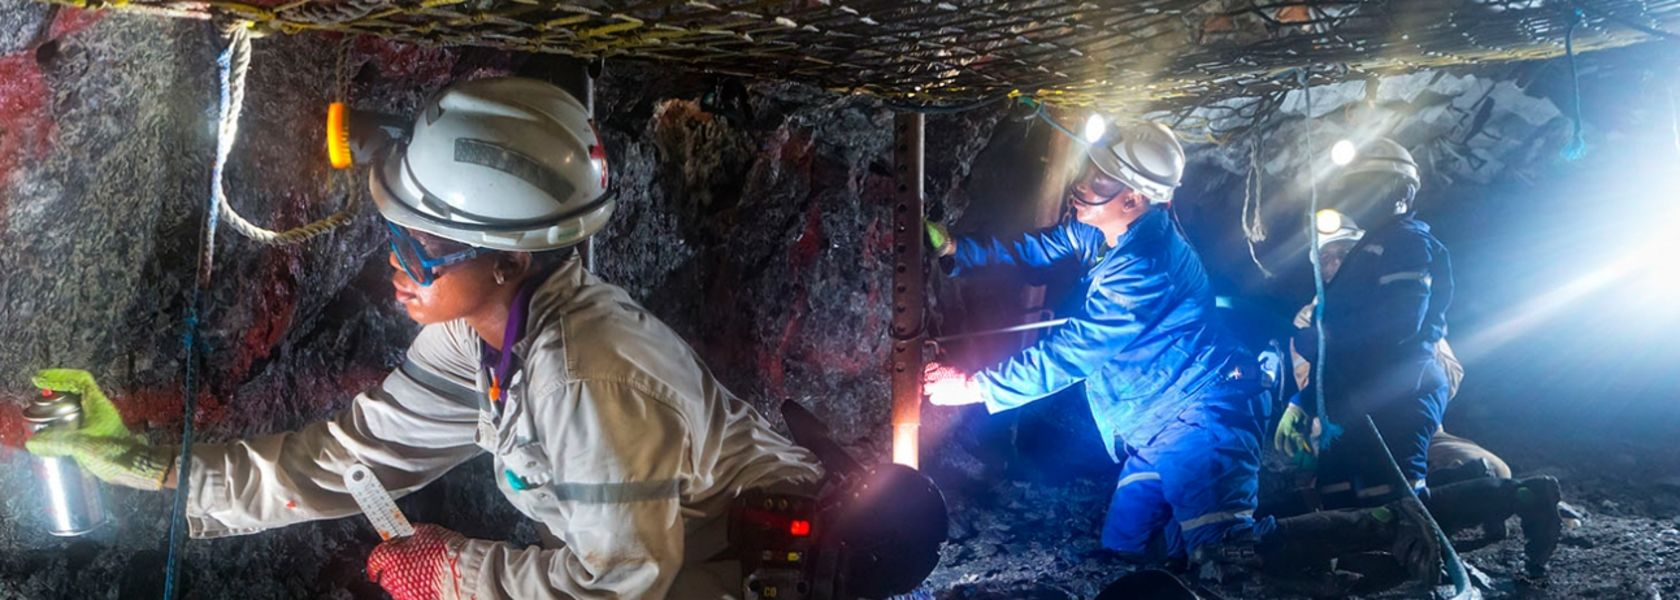 Minerals Council introduces CEO-led safety, health strategy